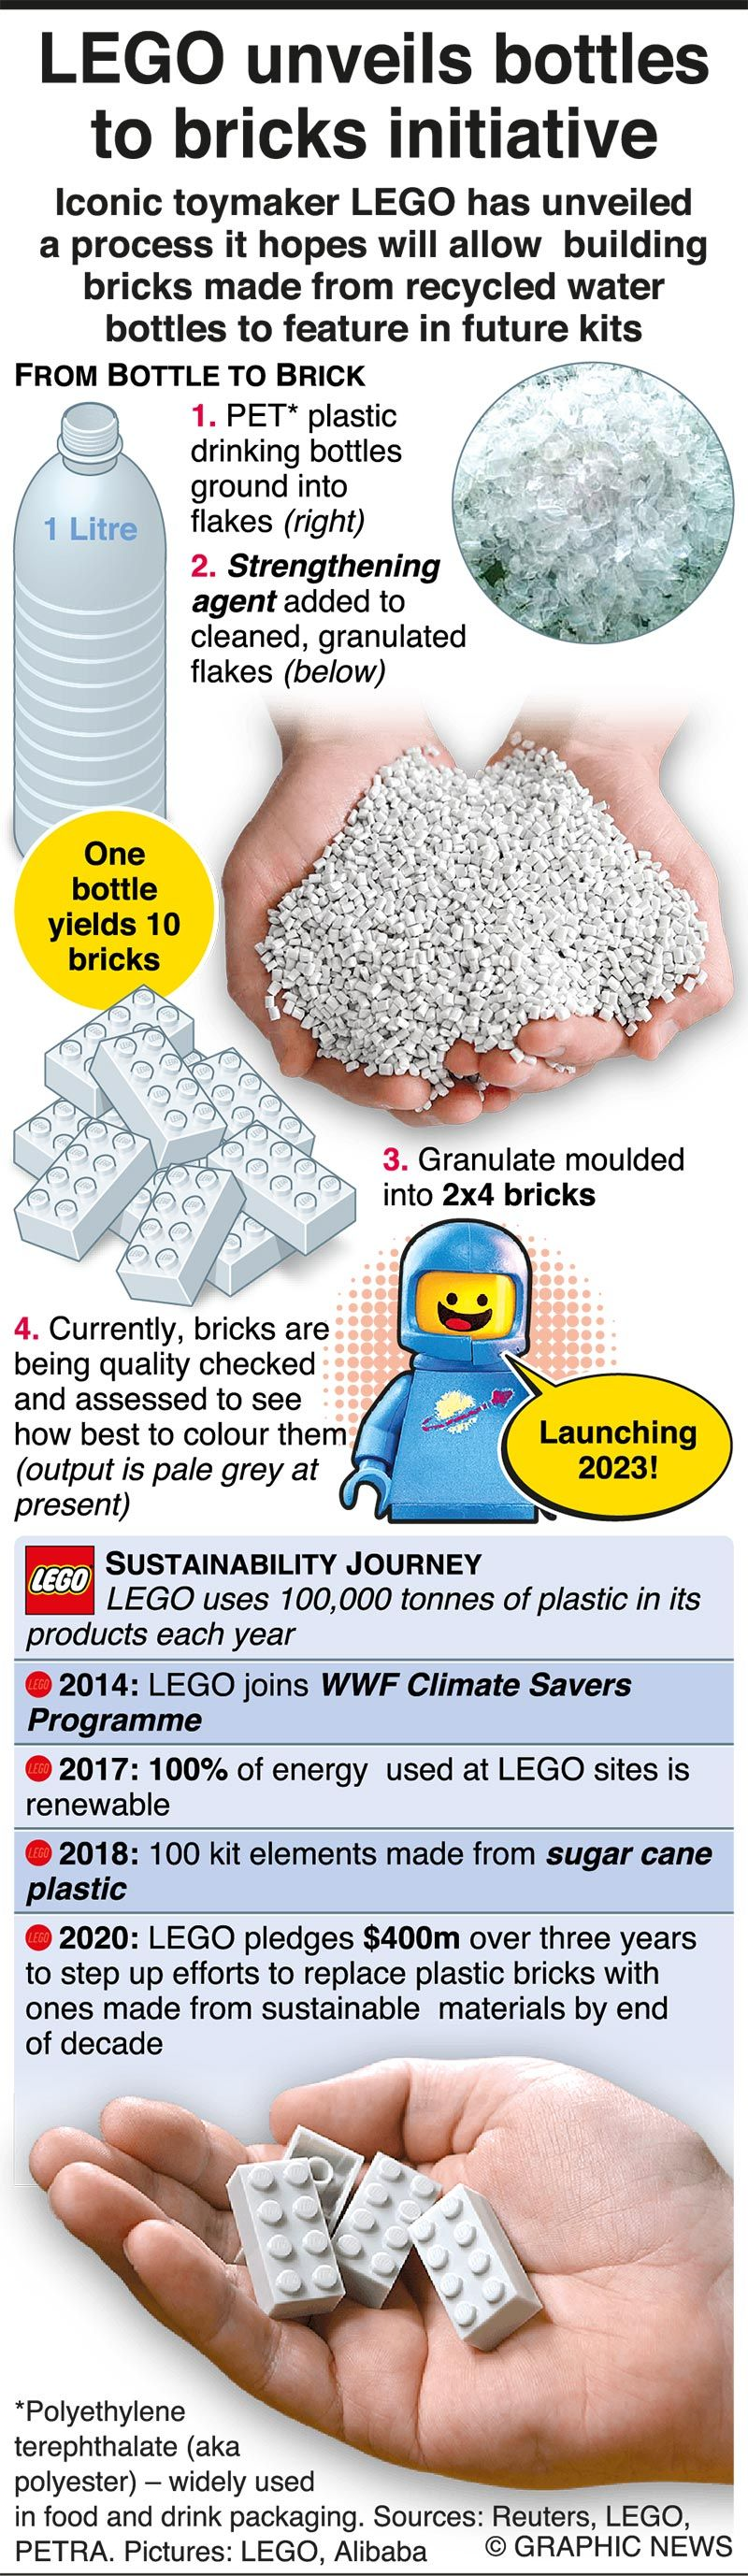 Infographics: LEGO investing heavily in recycled plastic brick technology